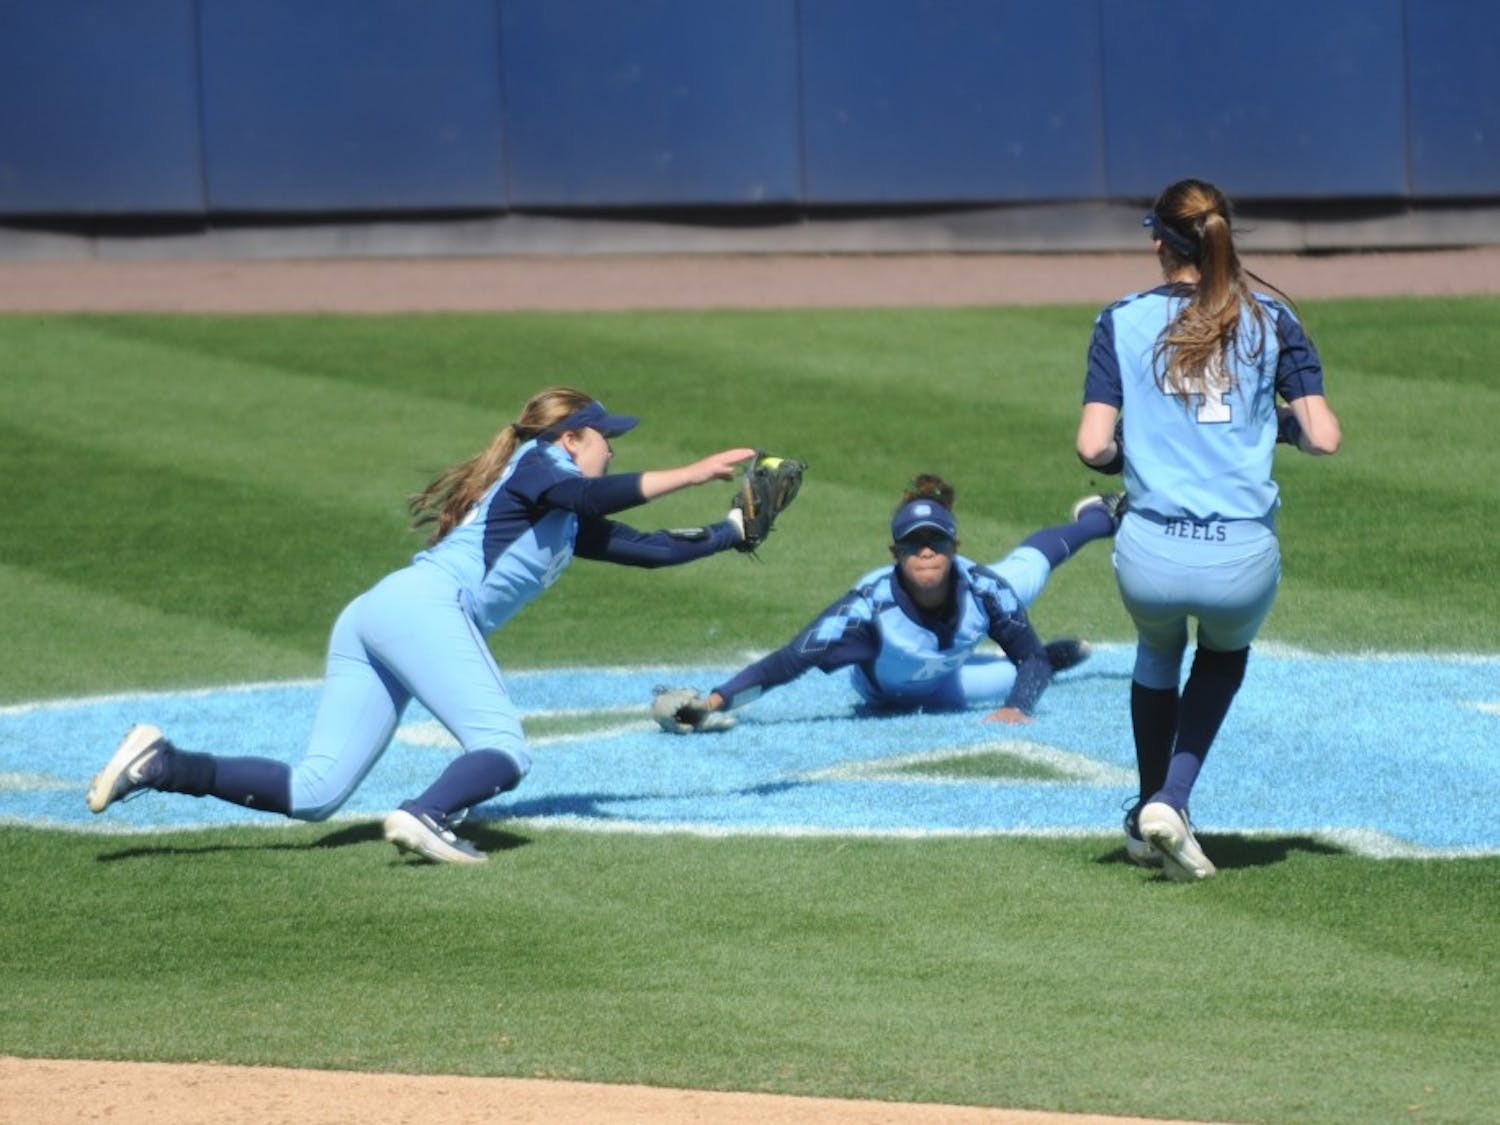 Infielder Abby Settlemyre (29) makes a diving catch during UNC's Softball game vs. Georgia Tech on Sunday, Mar. 24. UNC lost the game 3-2.